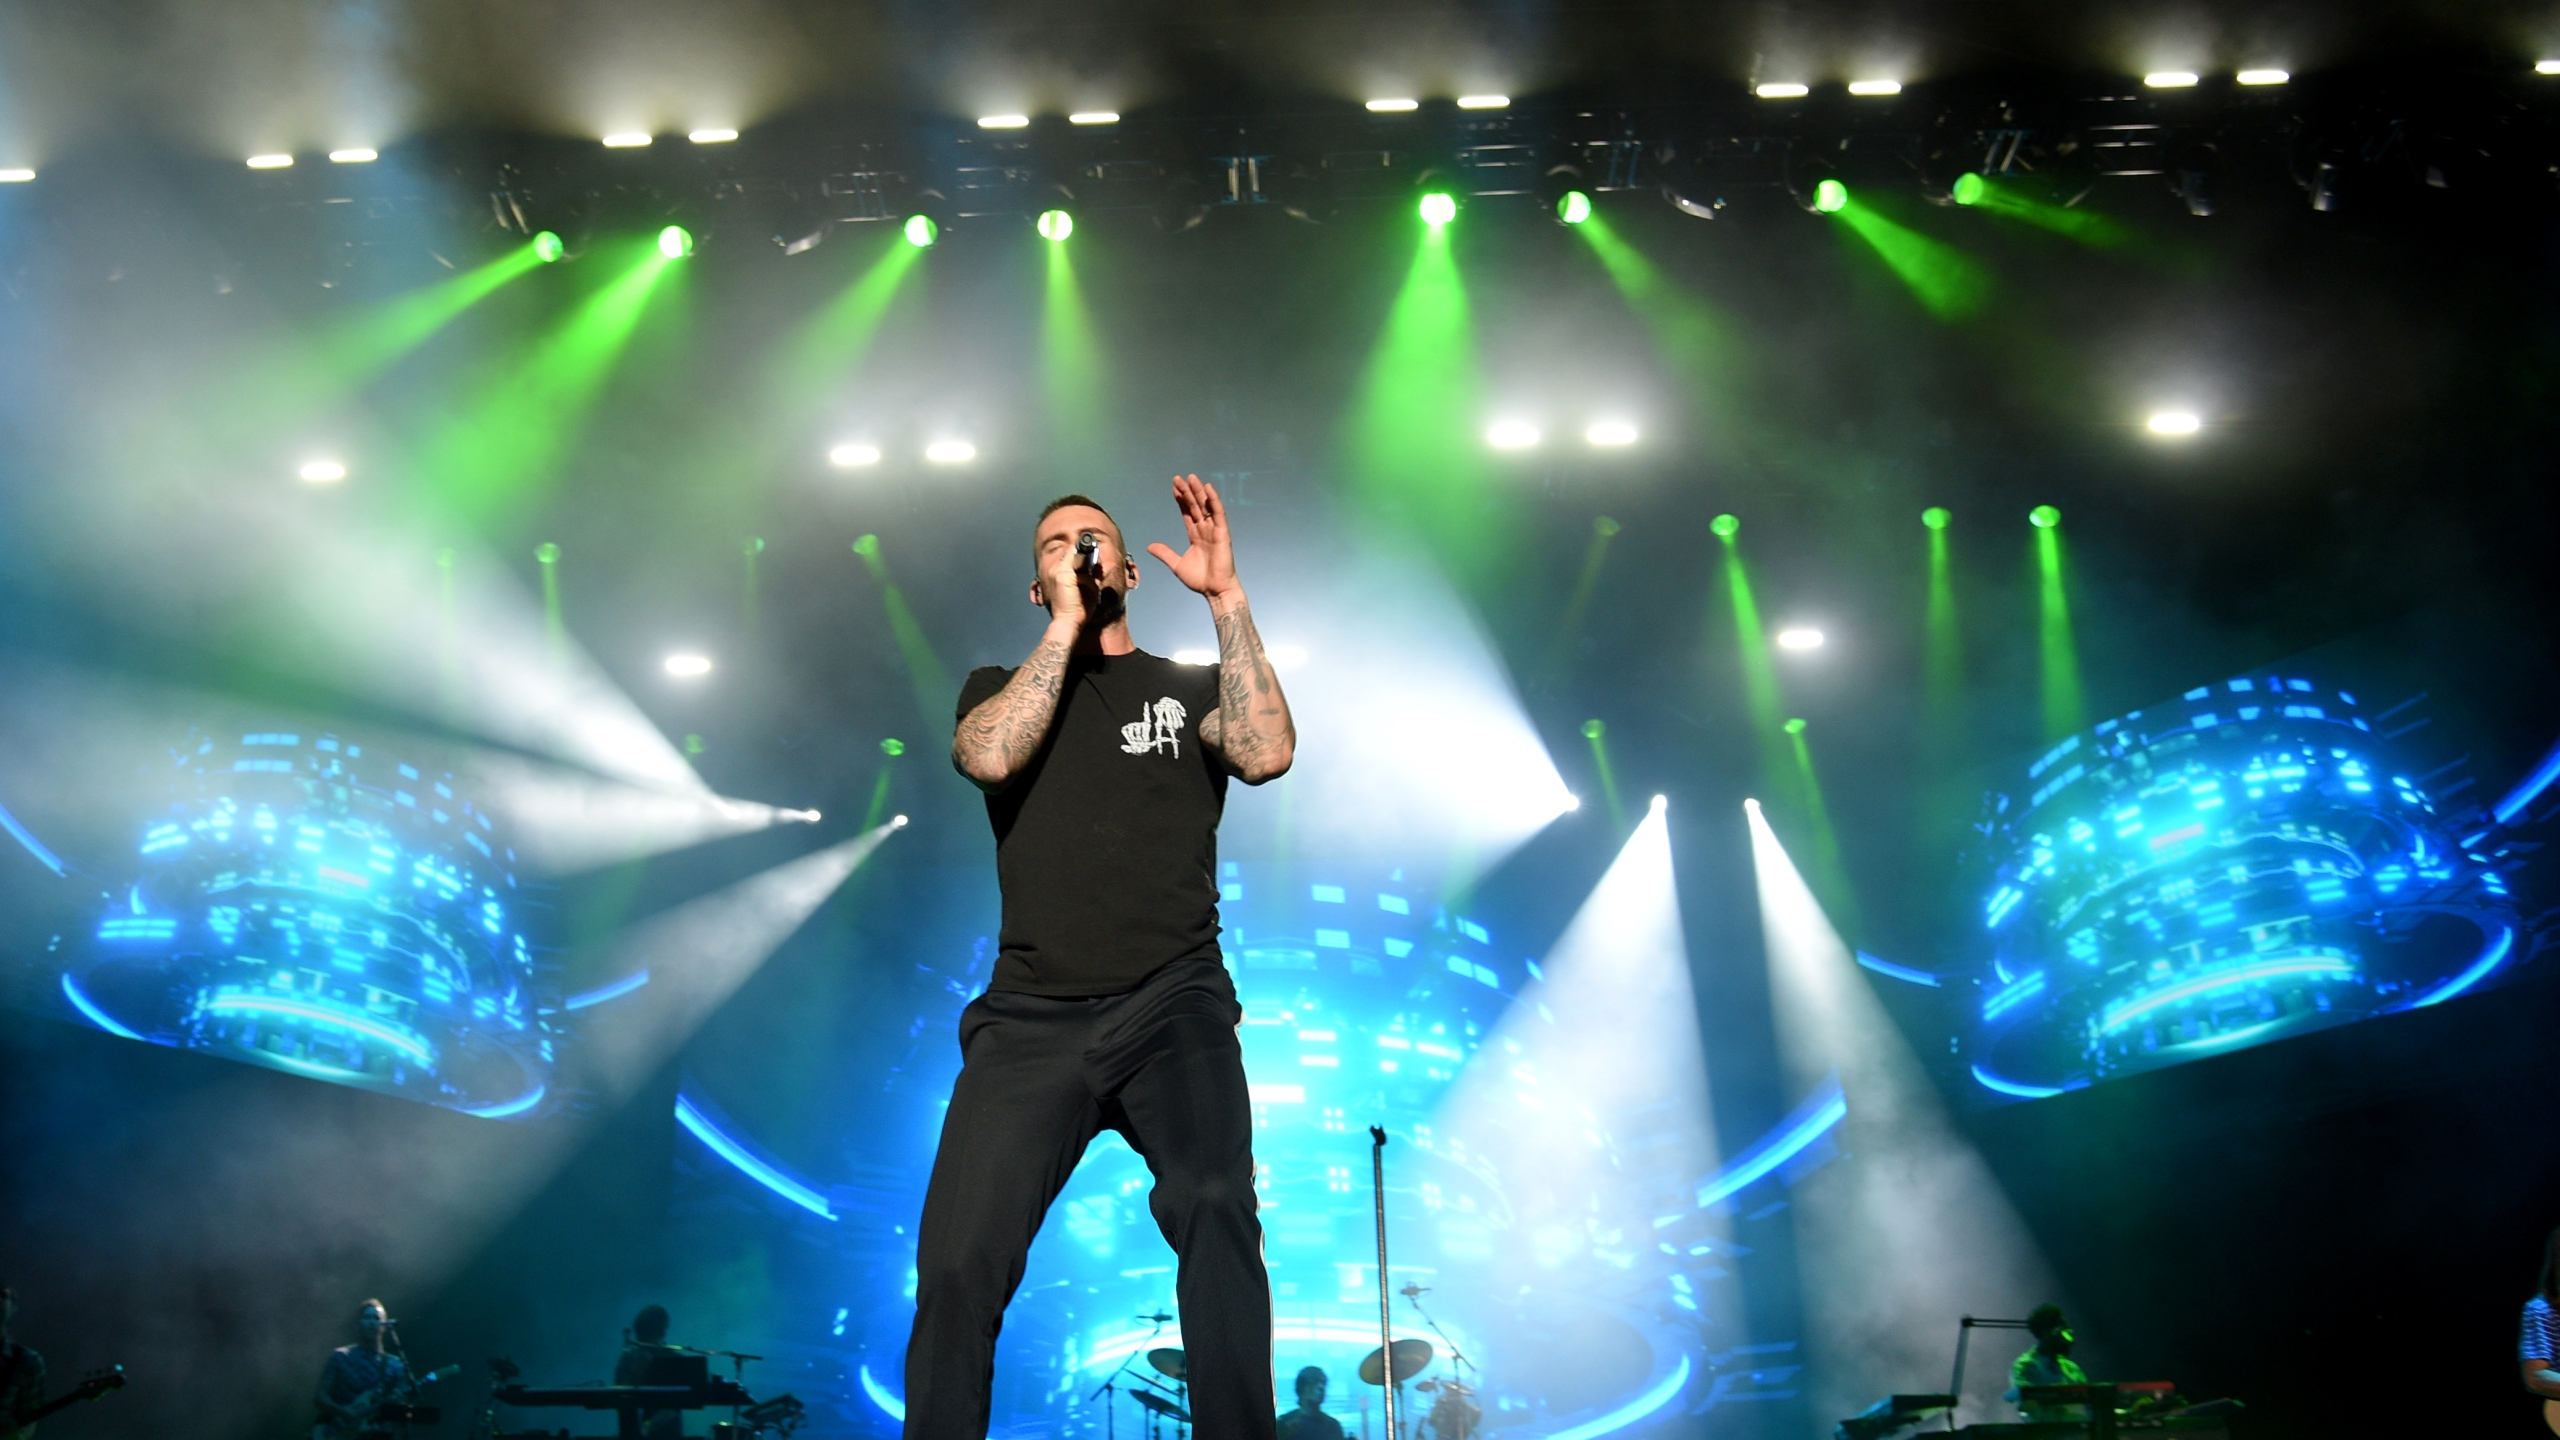 Adam Levine of Maroon 5 performs during the Capital One JamFest onstage at the NCAA March Madness Music Festival at Hemisfair on April 1, 2018 in San Antonio, Texas. (Credit: Michael Loccisano/Getty Images for Turner)